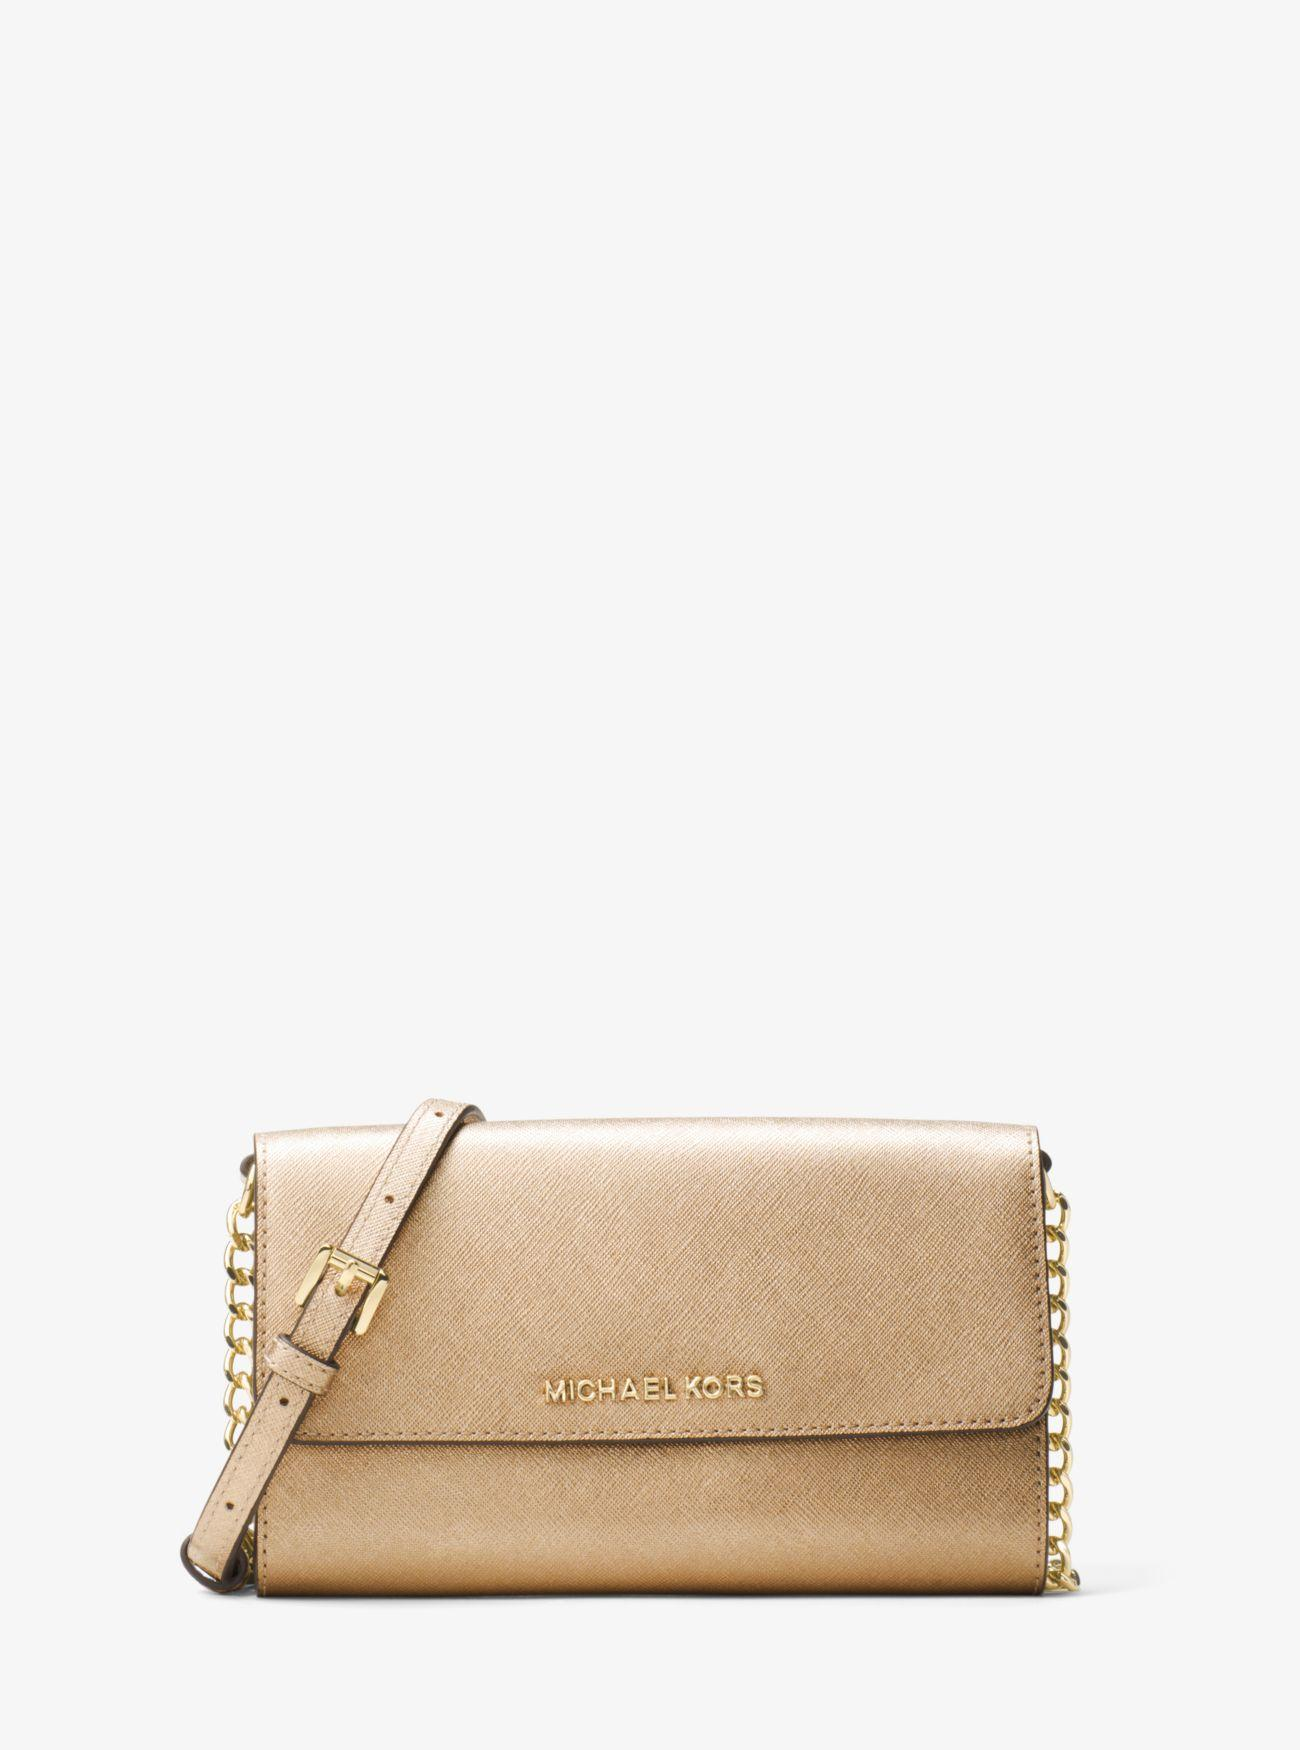 0459abeac20d81 Michael Kors - Jet Set Travel Metallic Leather Smartphone Crossbody - Lyst.  View fullscreen